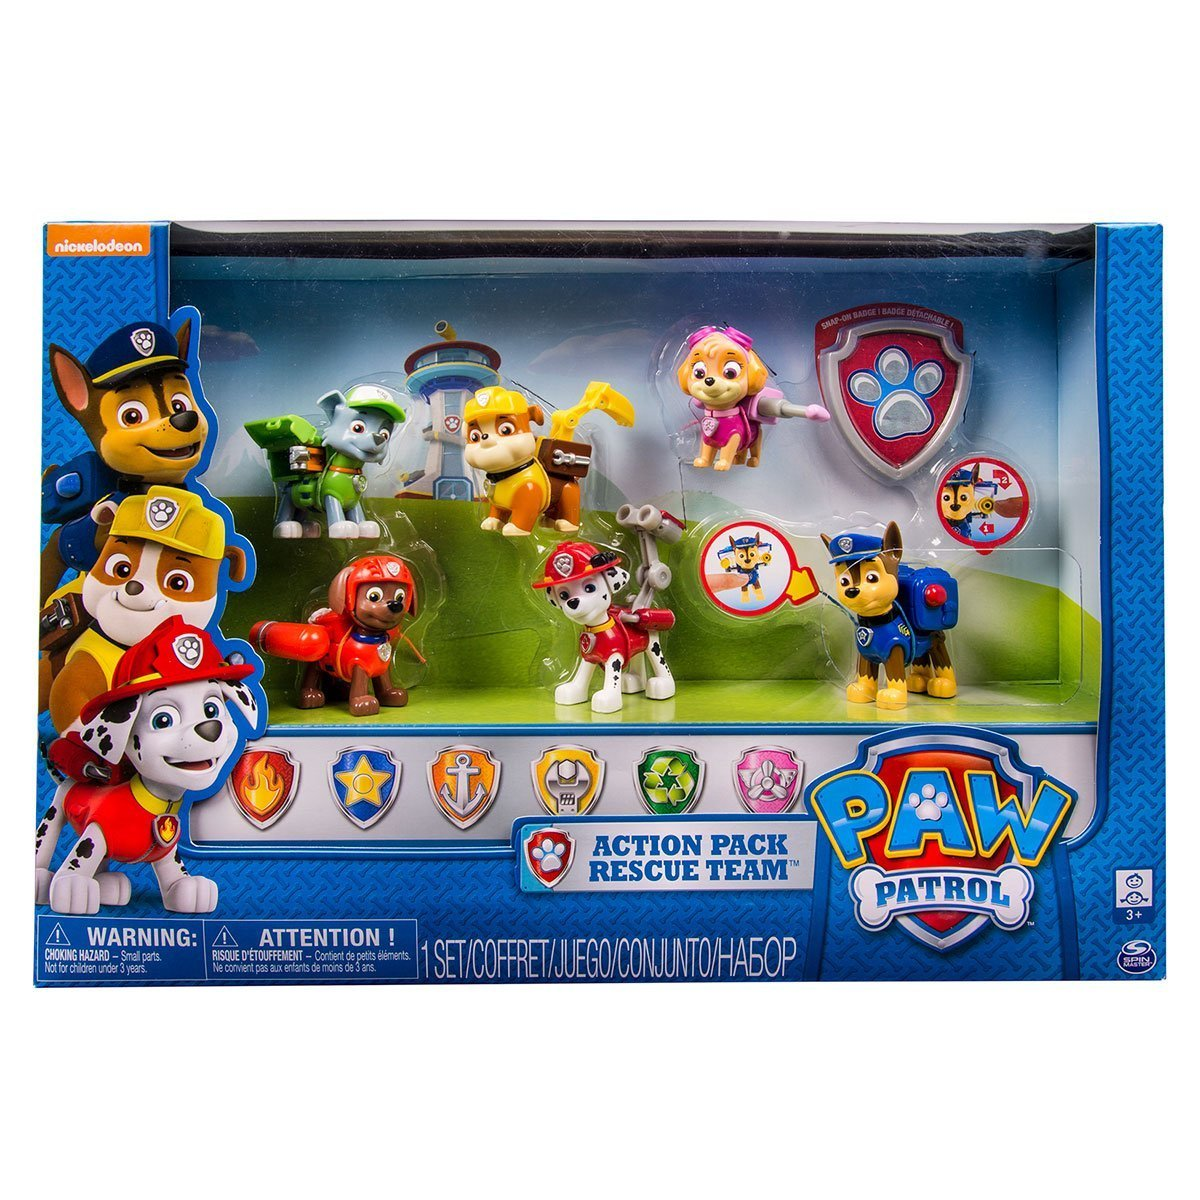 Paw Patrol Action Pack Rescue Team Everest Edition